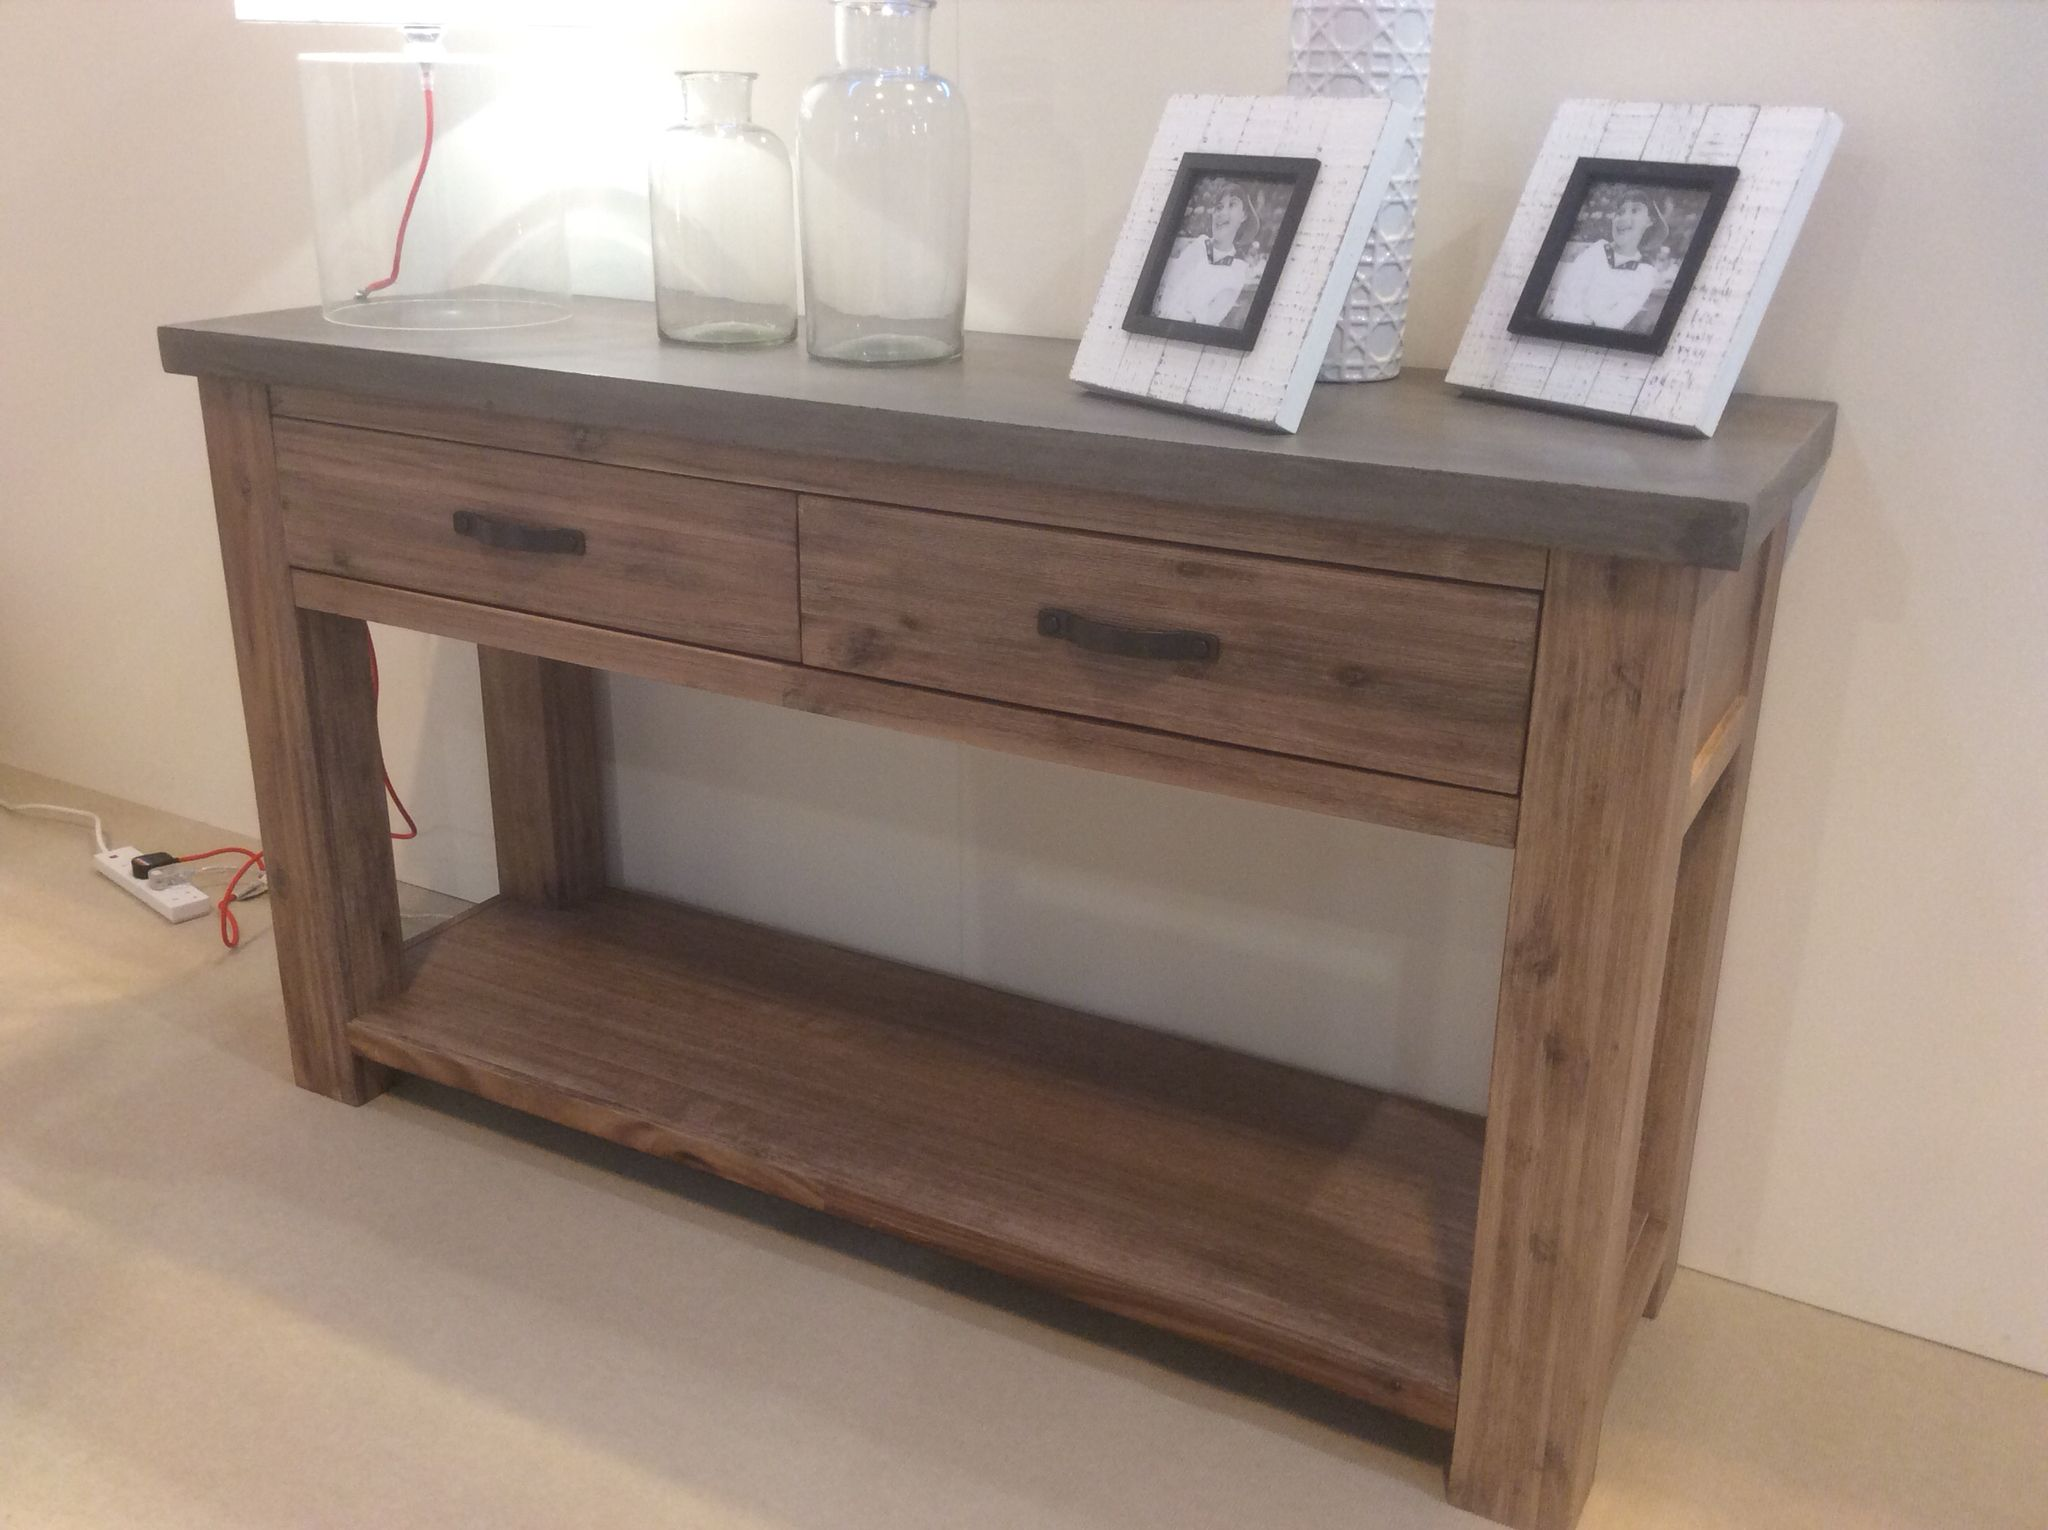 Sofa Tables Pinterest Best Rated Cover For Dogs Console Table Rockhampton Concrete Collection